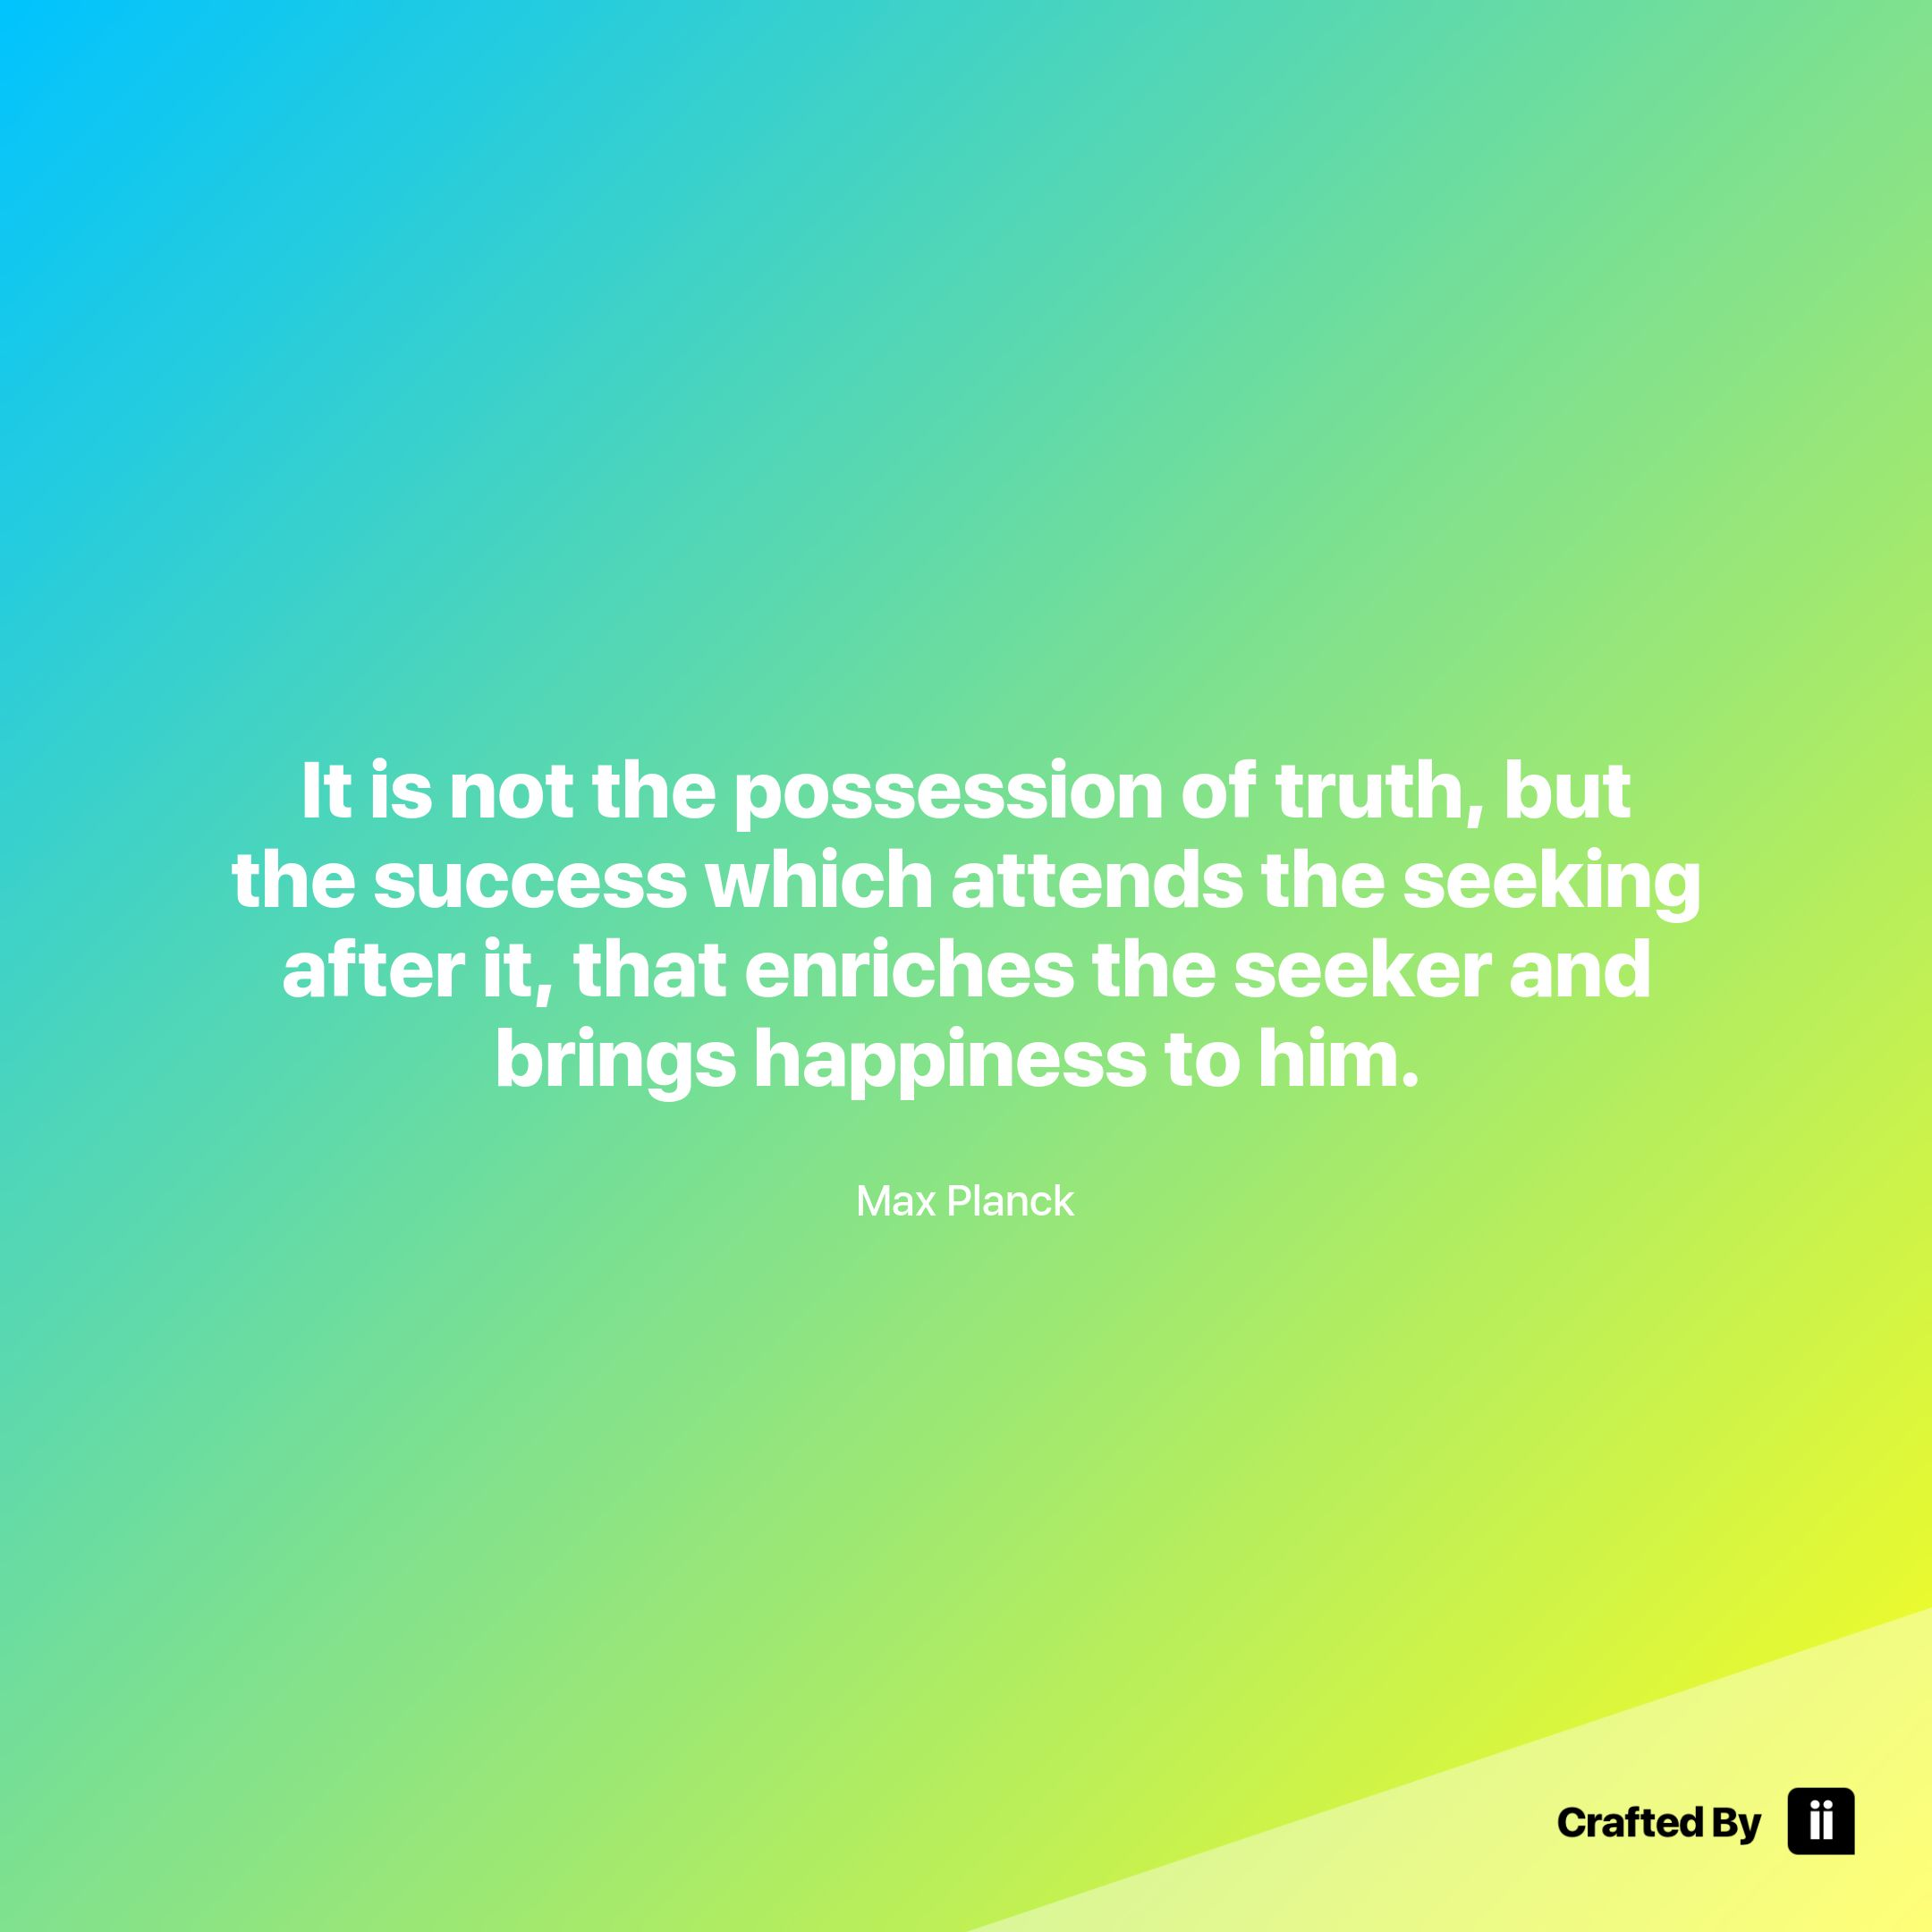 """""""It is not the possession of truth but the success which attends the seeking after it that enriches the seeker and brings happiness to him. """" By Max Planck #quotes #wordstoliveby #inspiration #inspirationalquote #motivation #quotestagram #quotesoftheday #beautiful"""